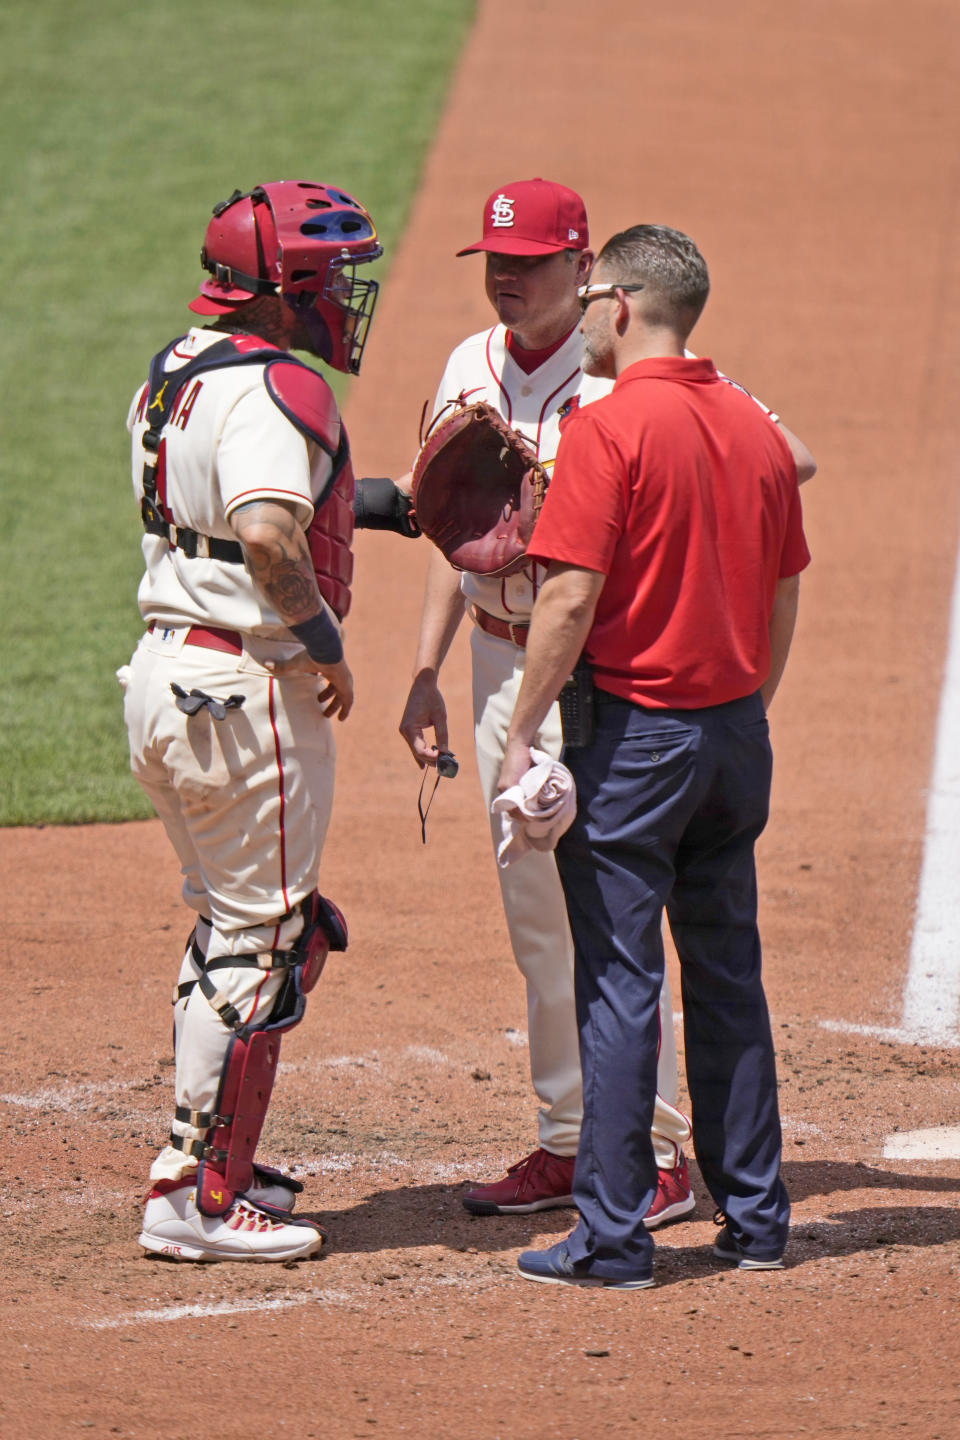 St. Louis Cardinals catcher Yadier Molina, left, talks with manager Mike Shildt and trainer Adam Olsen after being injured during the fourth inning of a baseball game against the Cincinnati Reds Saturday, June 5, 2021, in St. Louis. (AP Photo/Jeff Roberson)